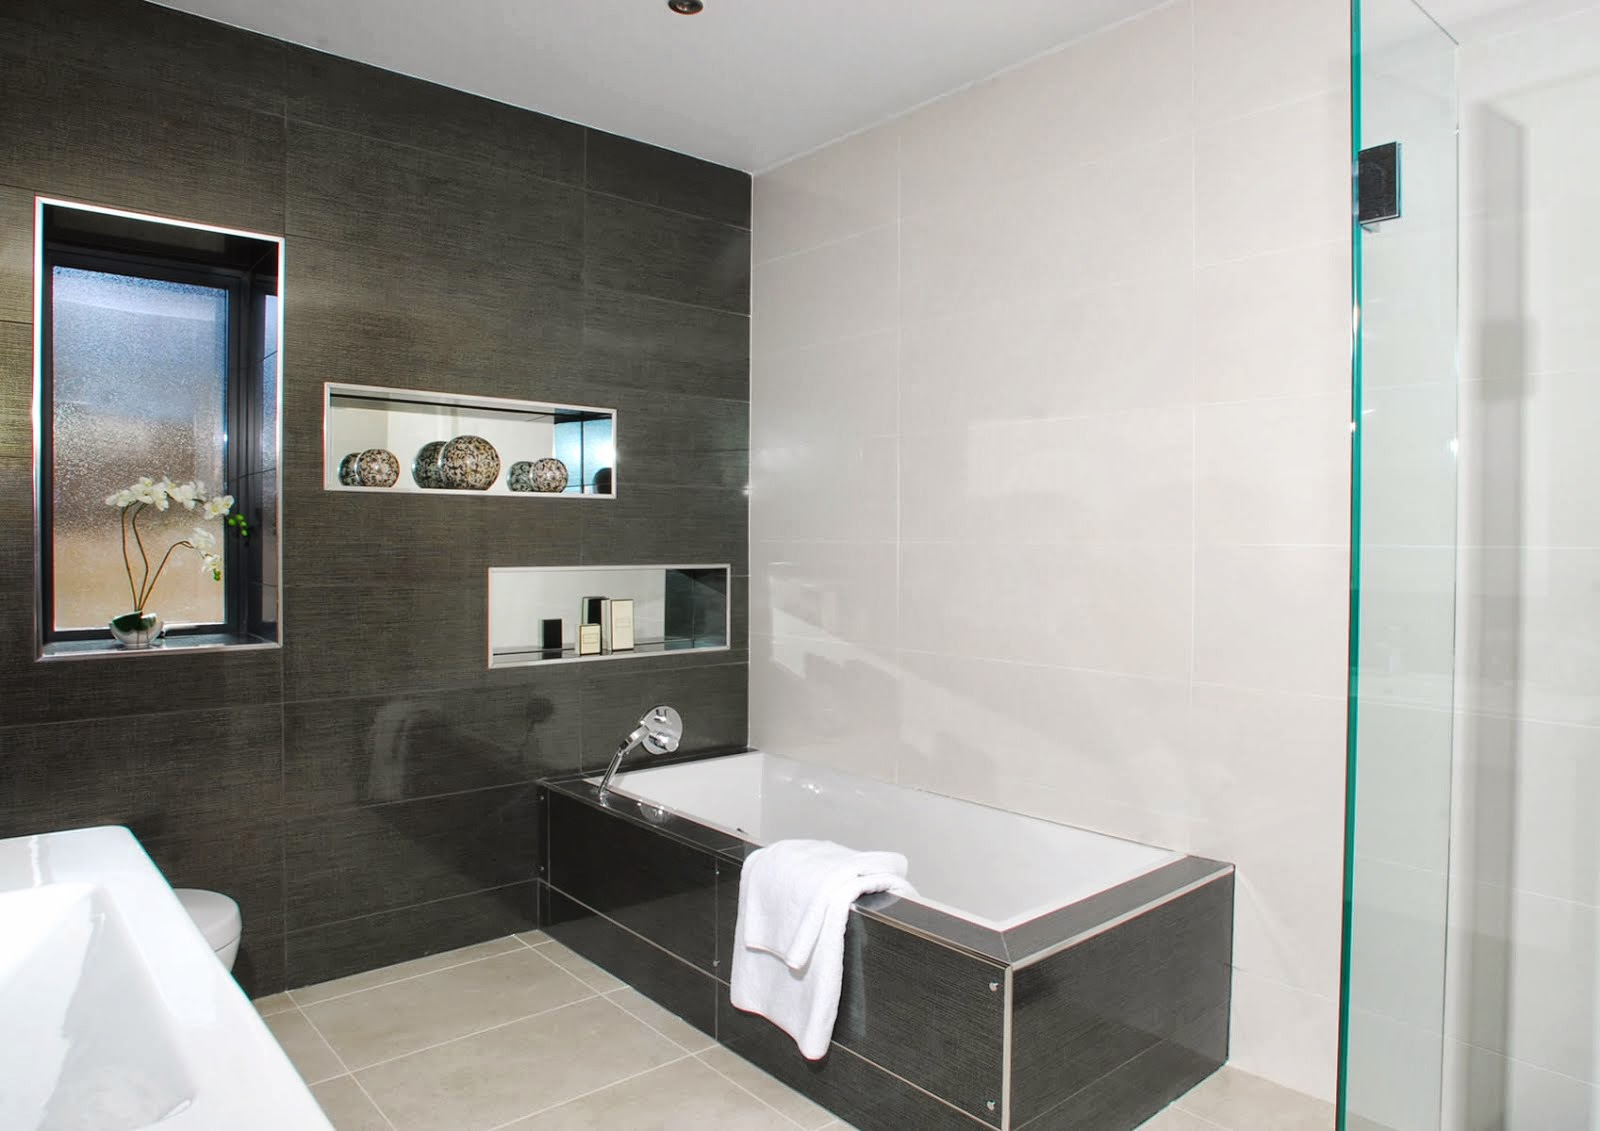 bathroom design ideas uk ForBathroom Design Uk